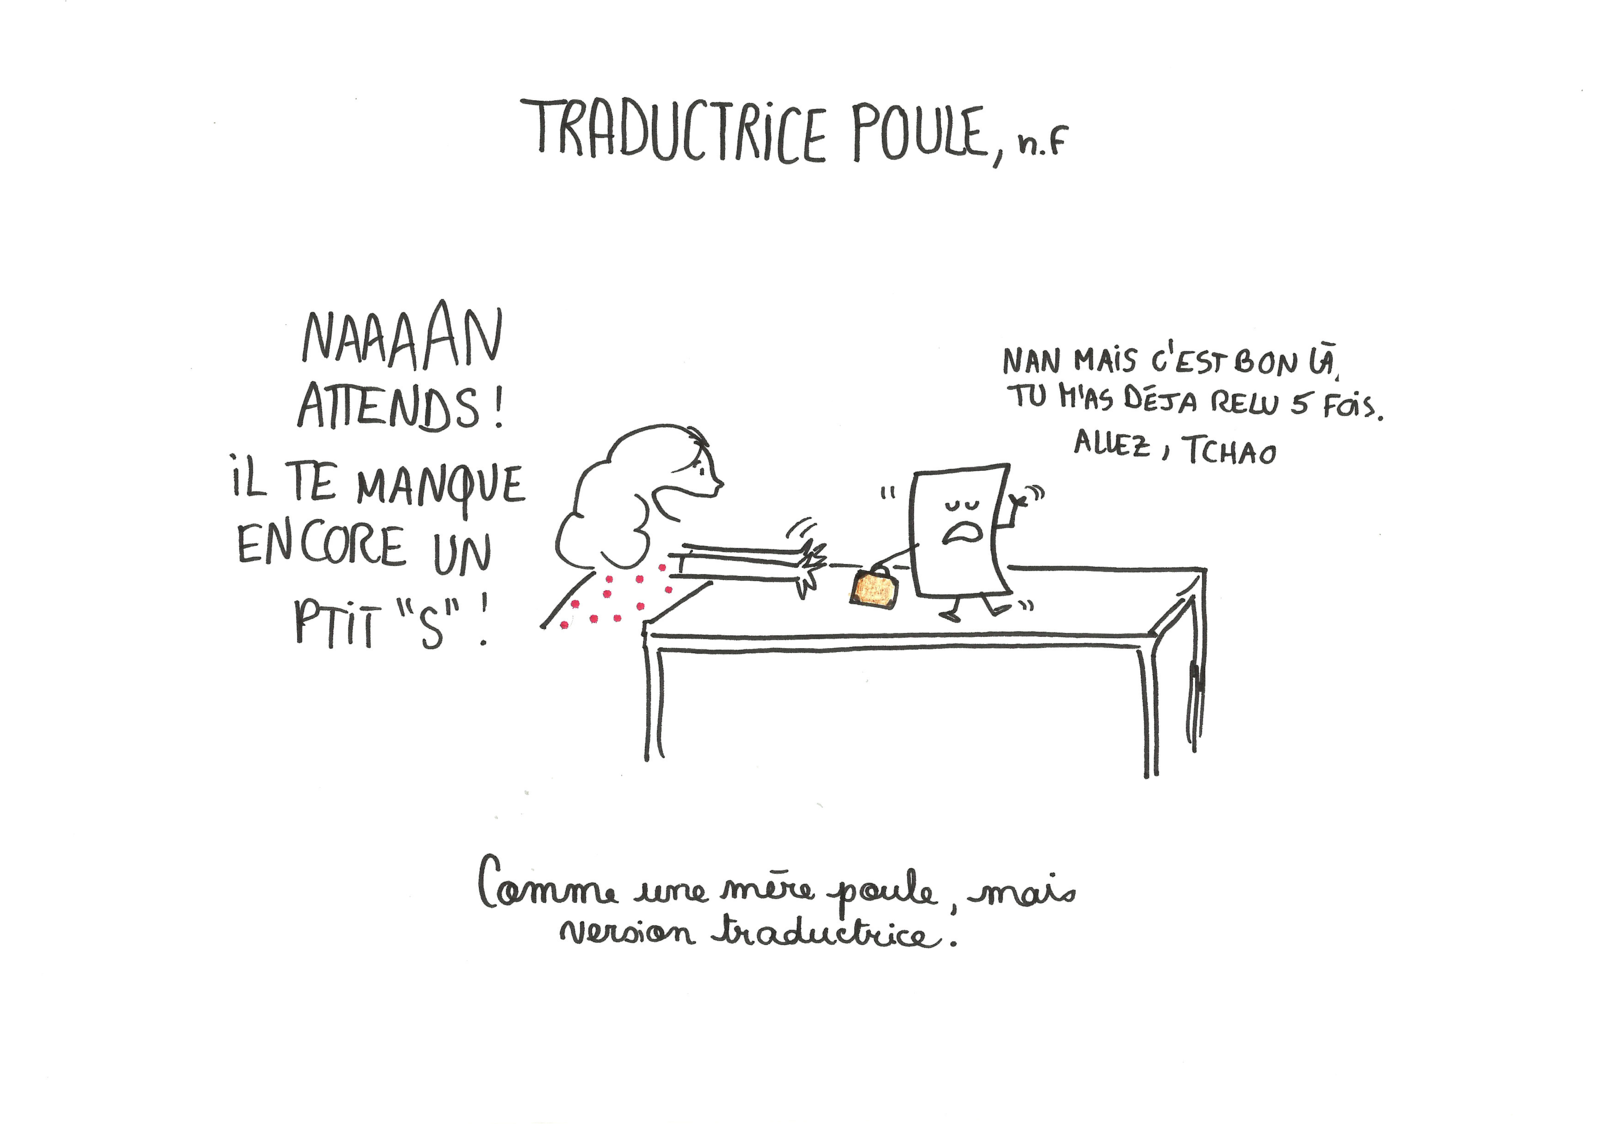 Traductrice poule